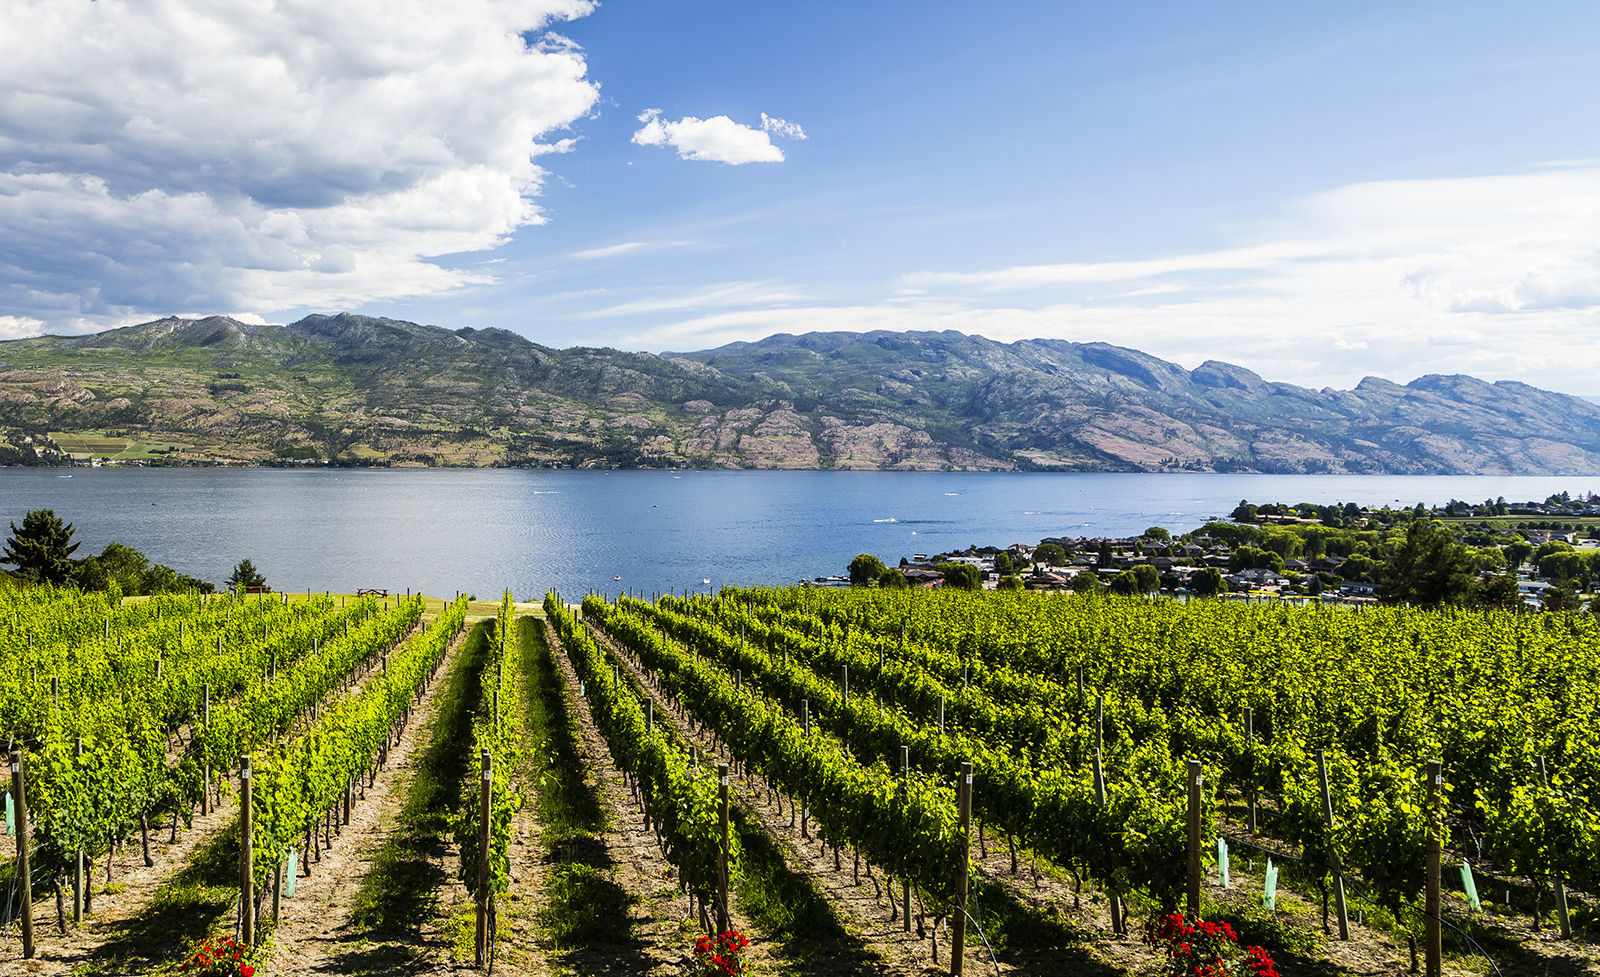 West Kelowna wine country